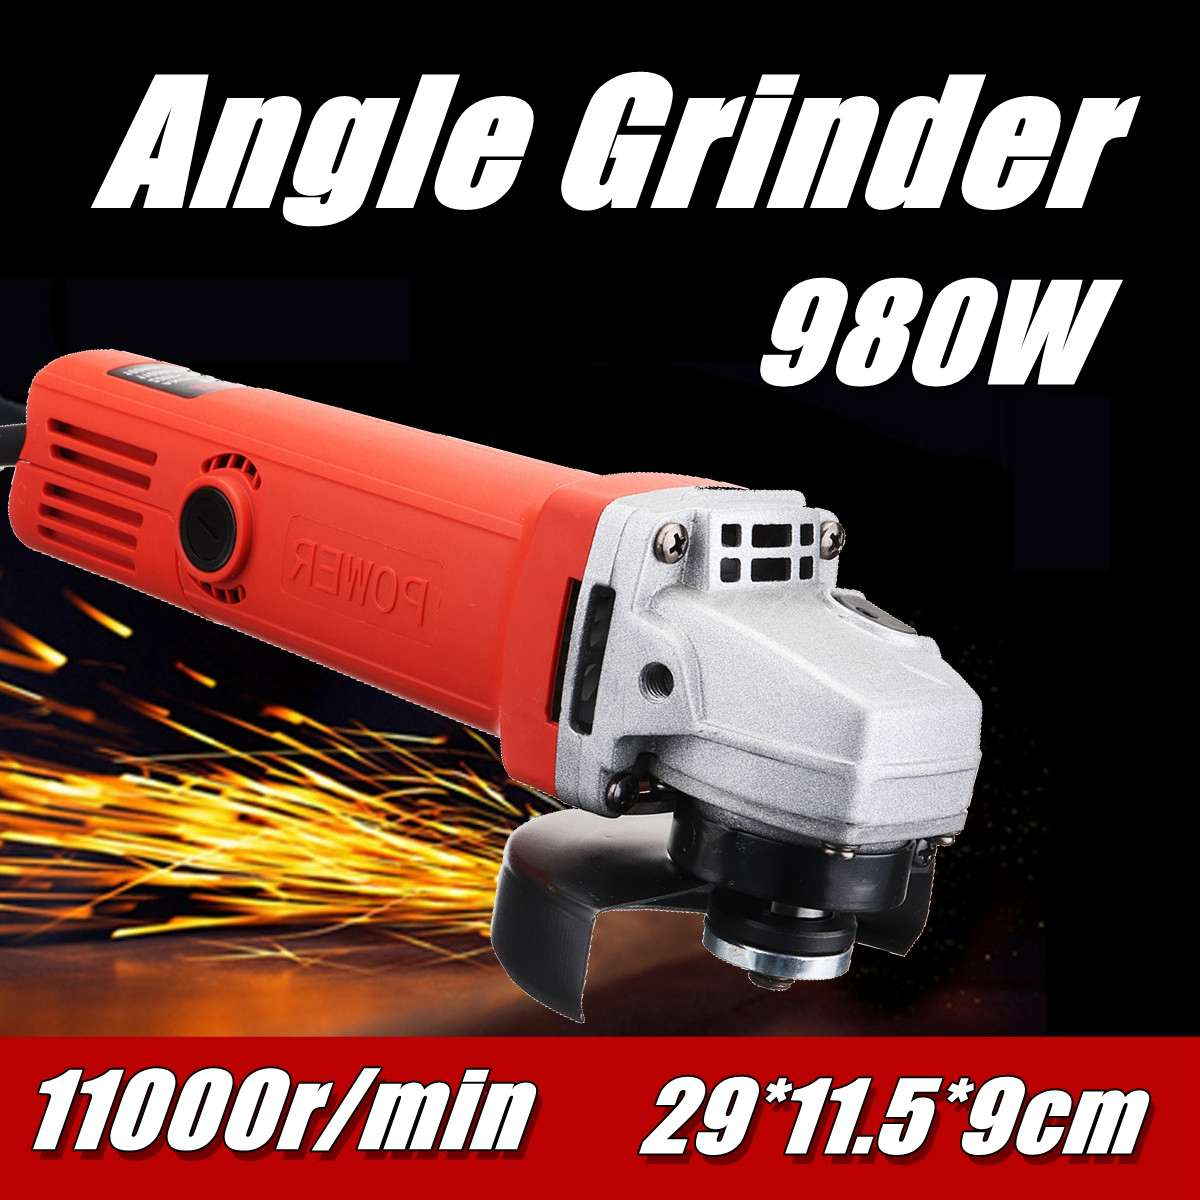 220V 50Hz 980W 11000r min Protable Electric Angle Grinder Muti Function Cutting Polishing Tools Hand Grinding